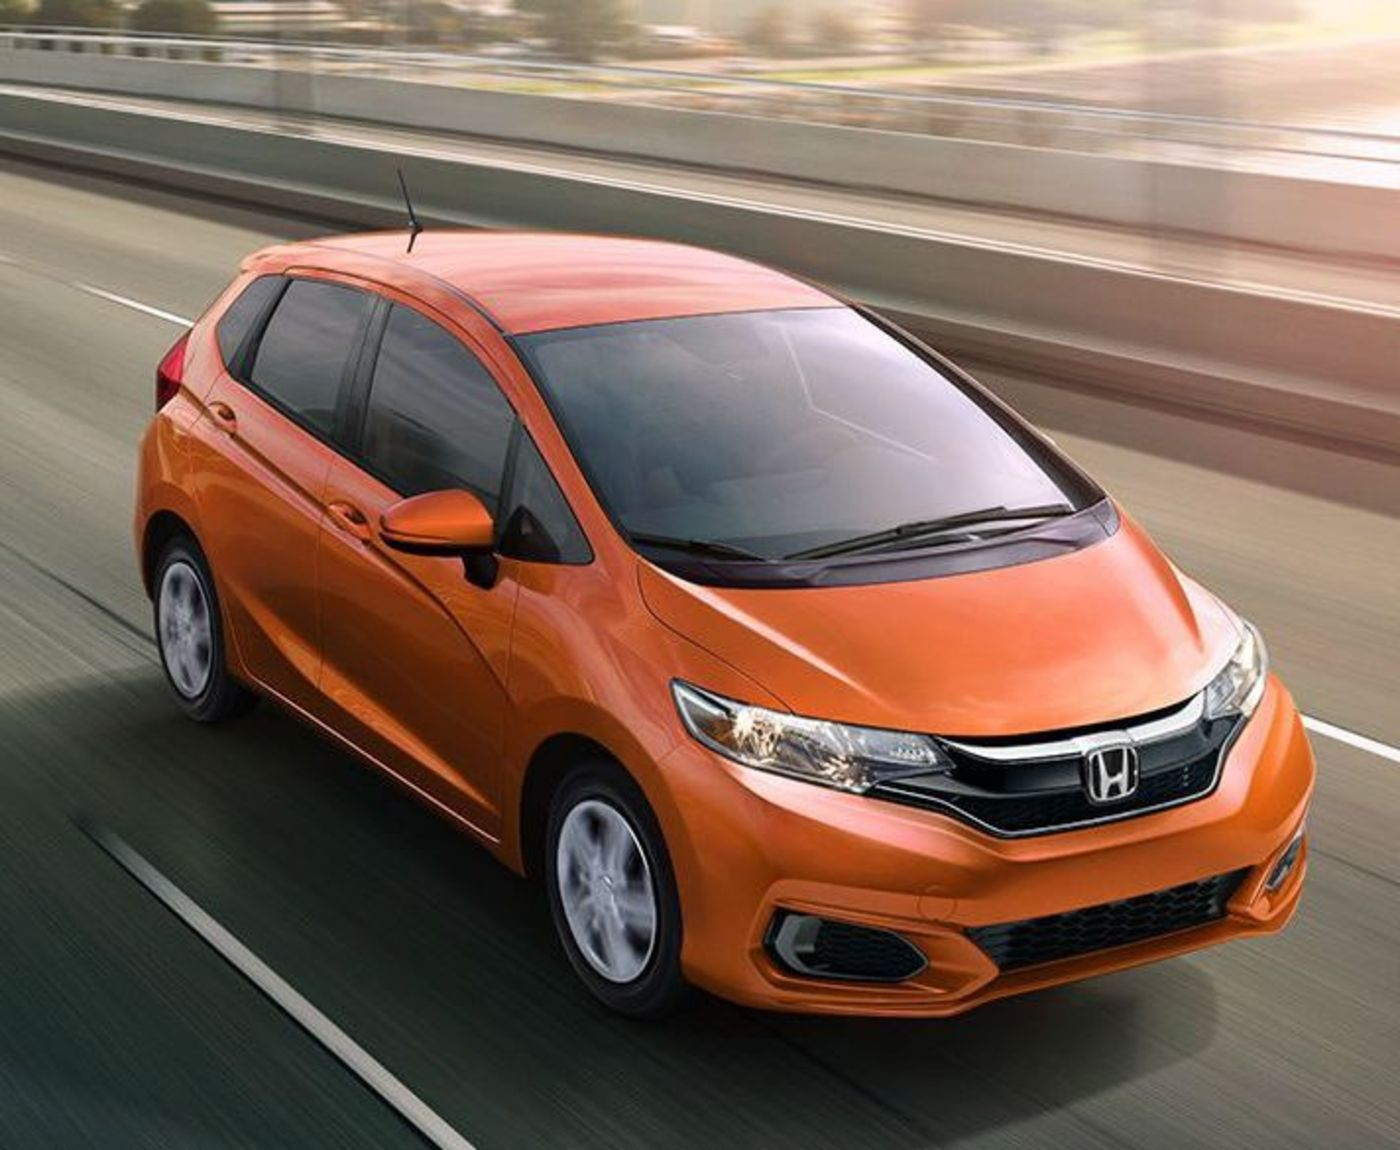 2018 Honda Fit Leasing in Chantilly, VA